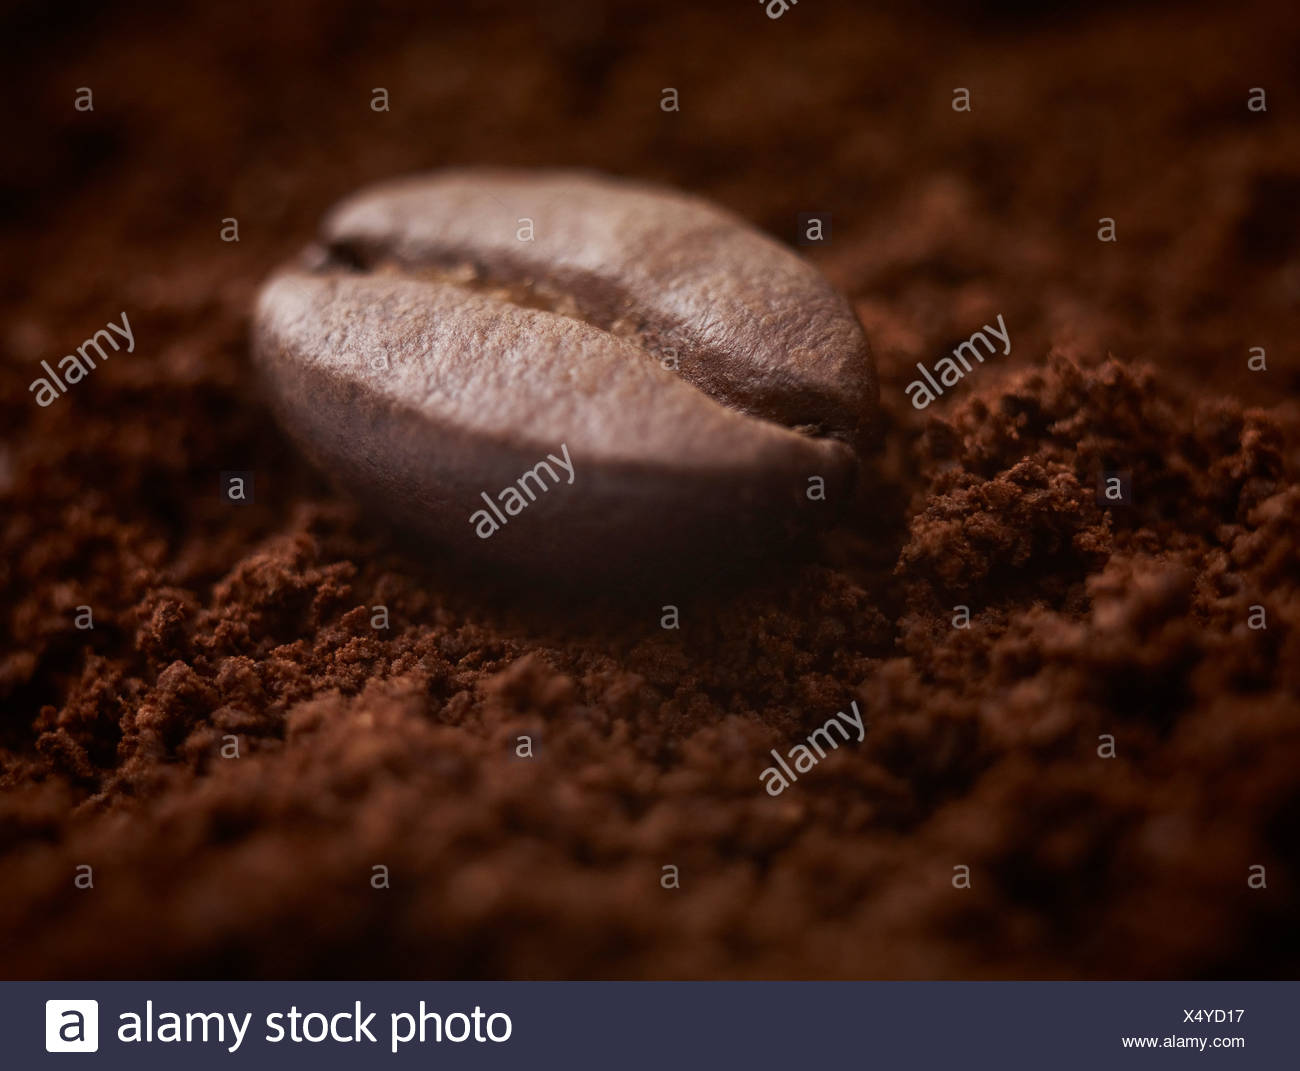 Close up of coffee bean on ground coffee - Stock Image